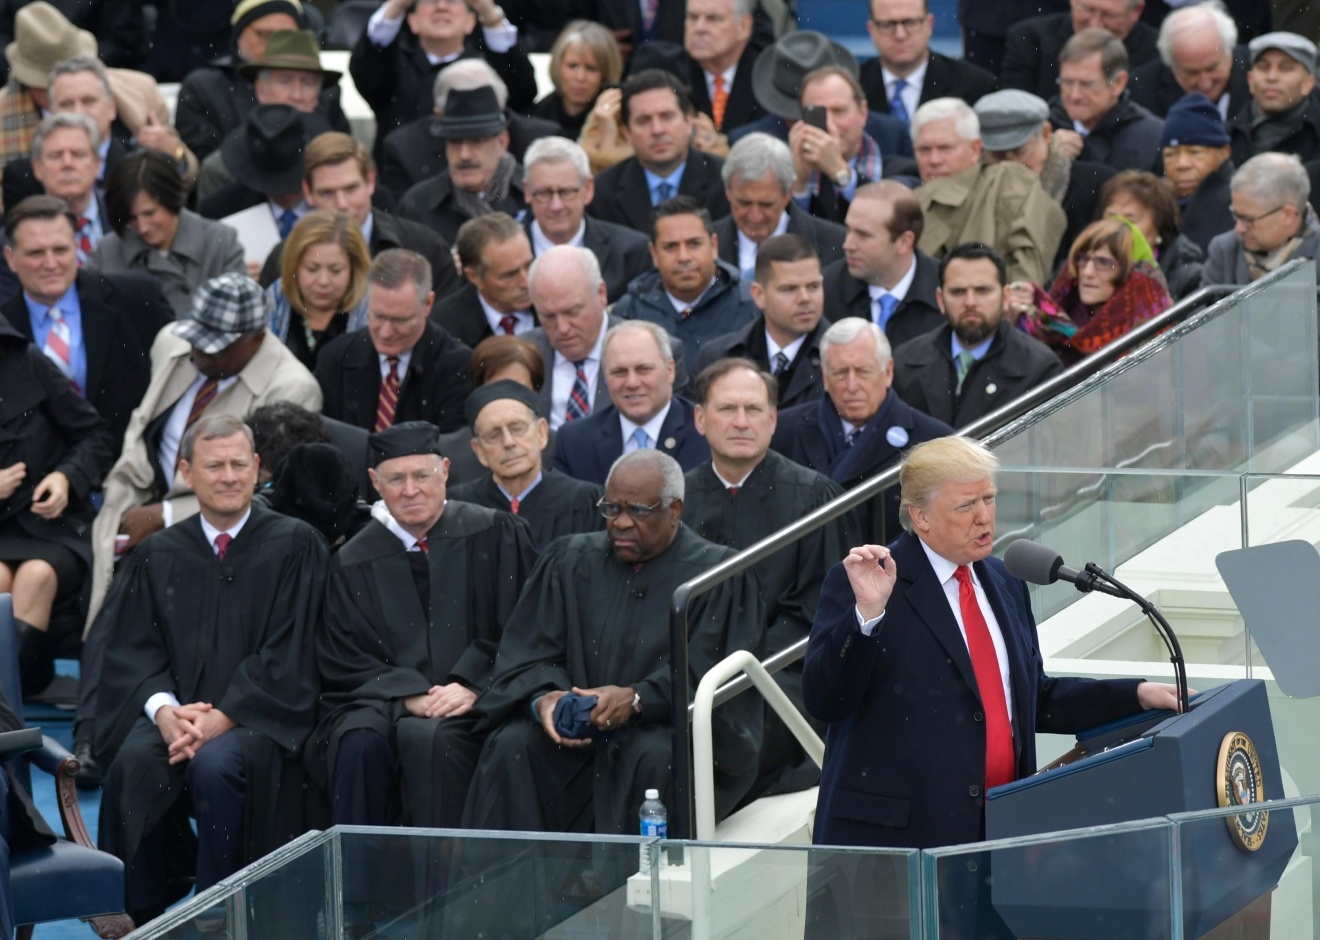 inauguration president of the united states Donald j trump is the 45th president of the united states he believes the united states has incredible potential and will go on to exceed anything that.